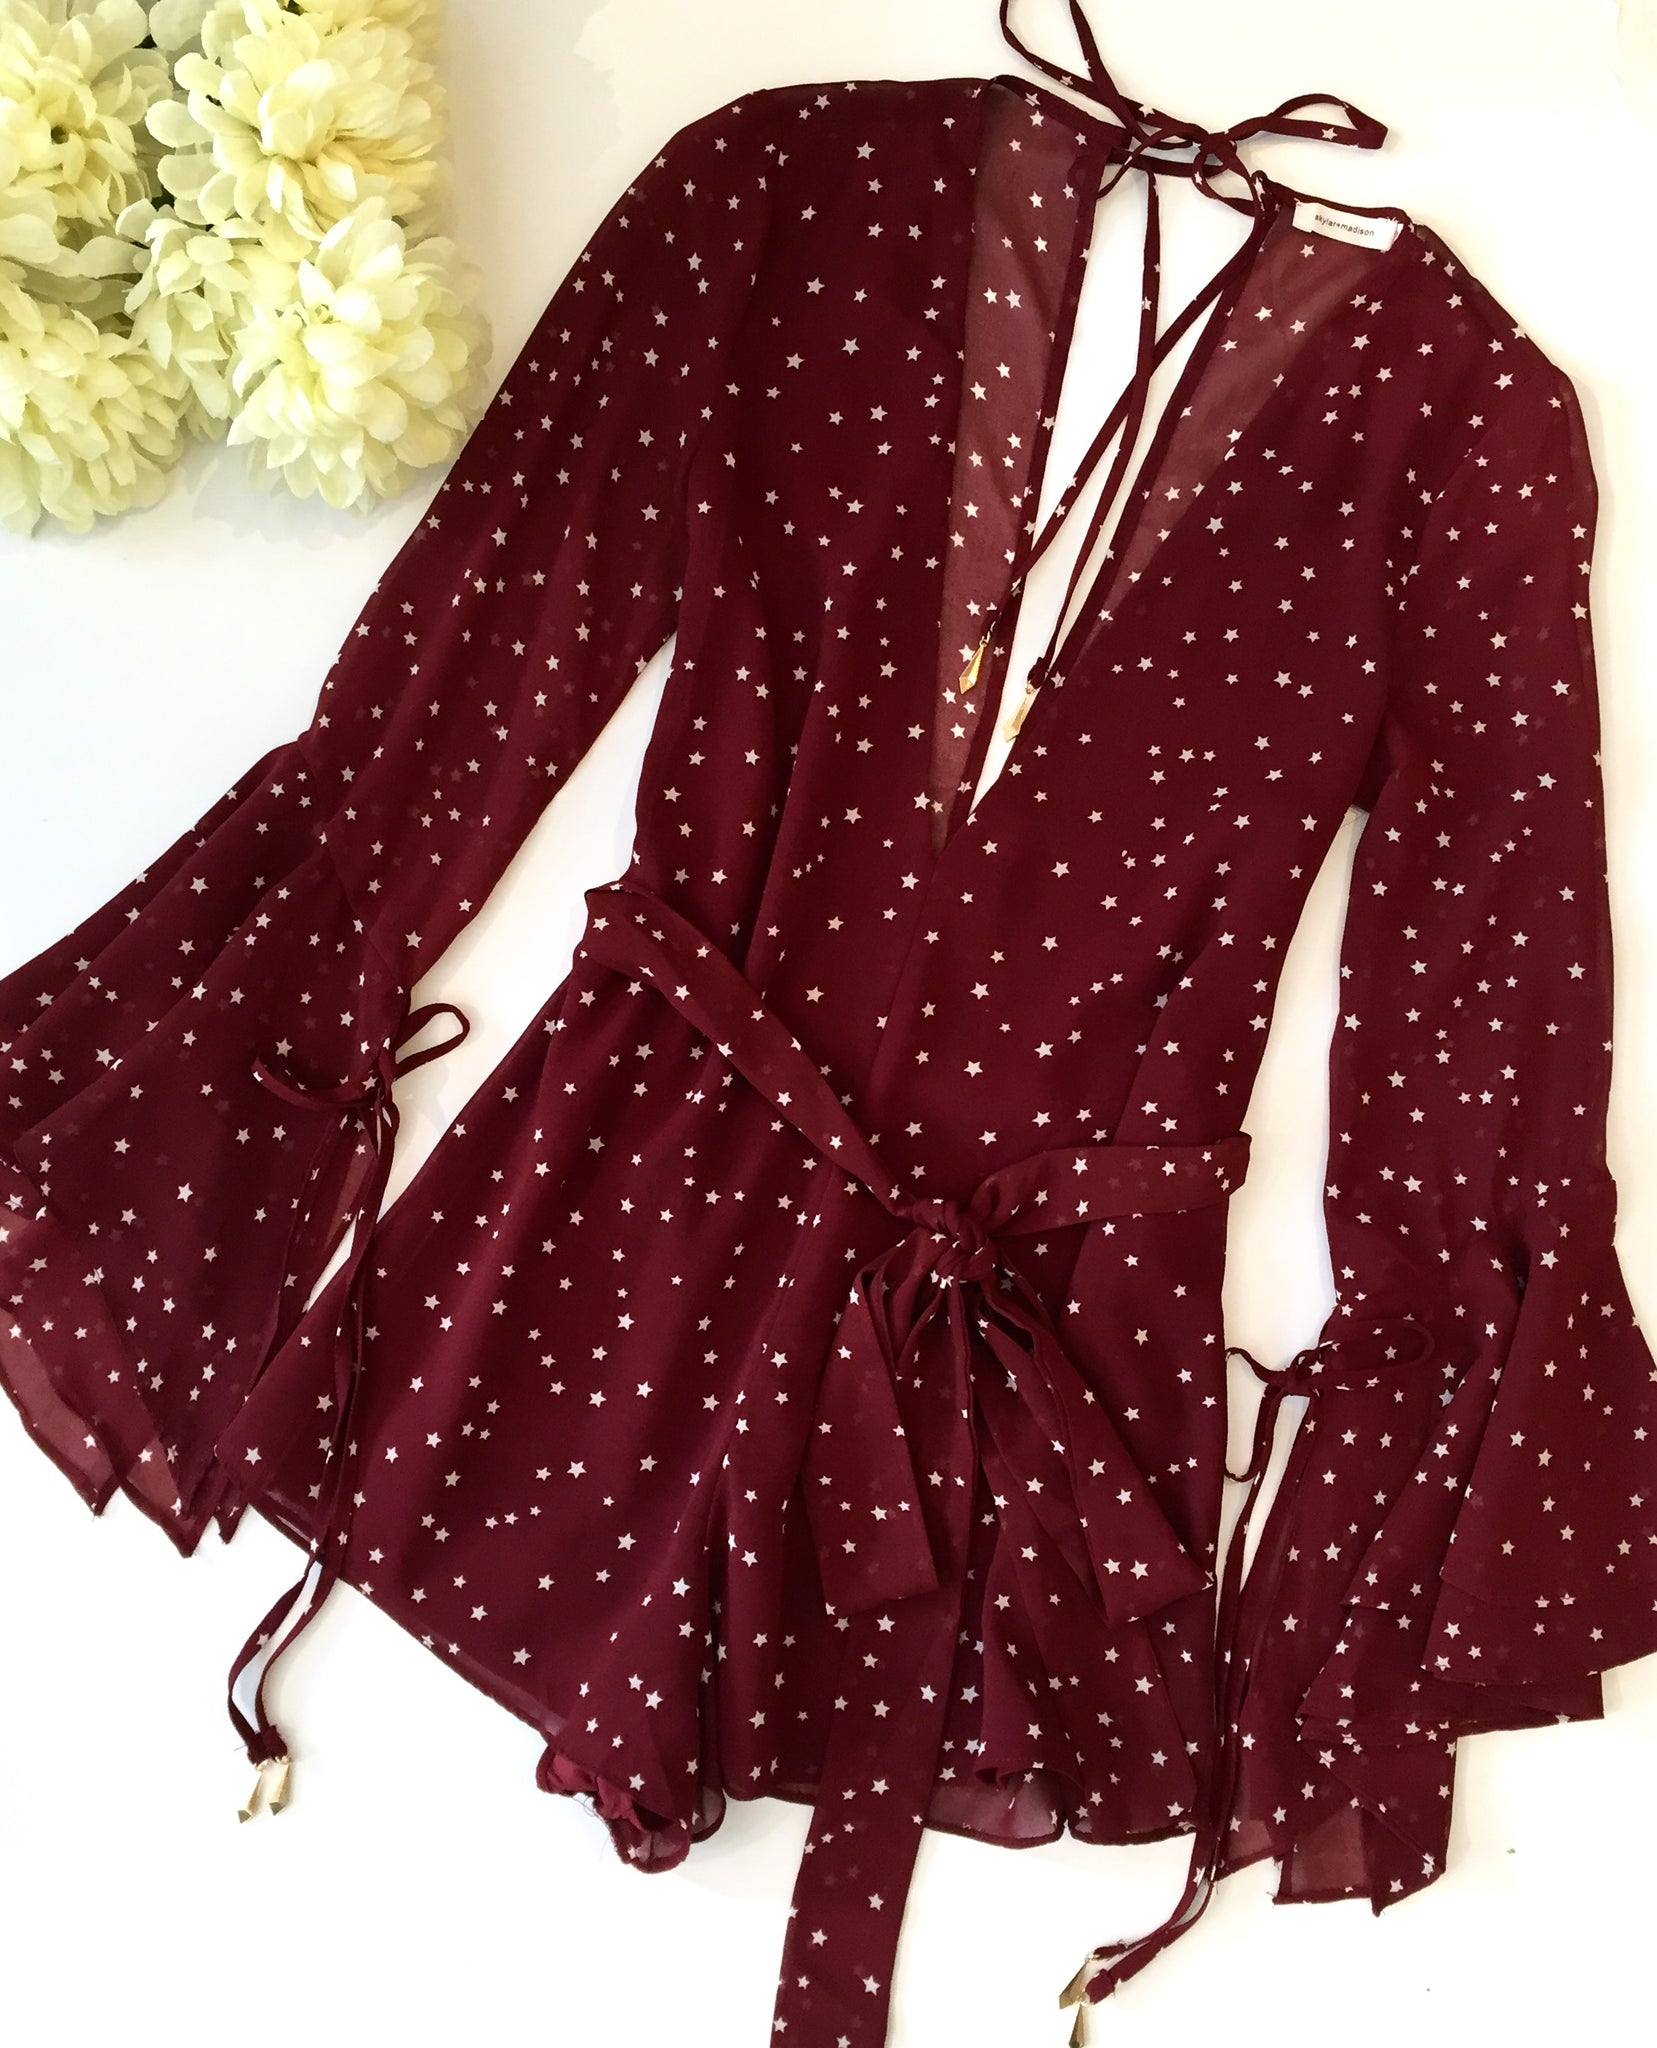 STAR STRUCK ROMPER